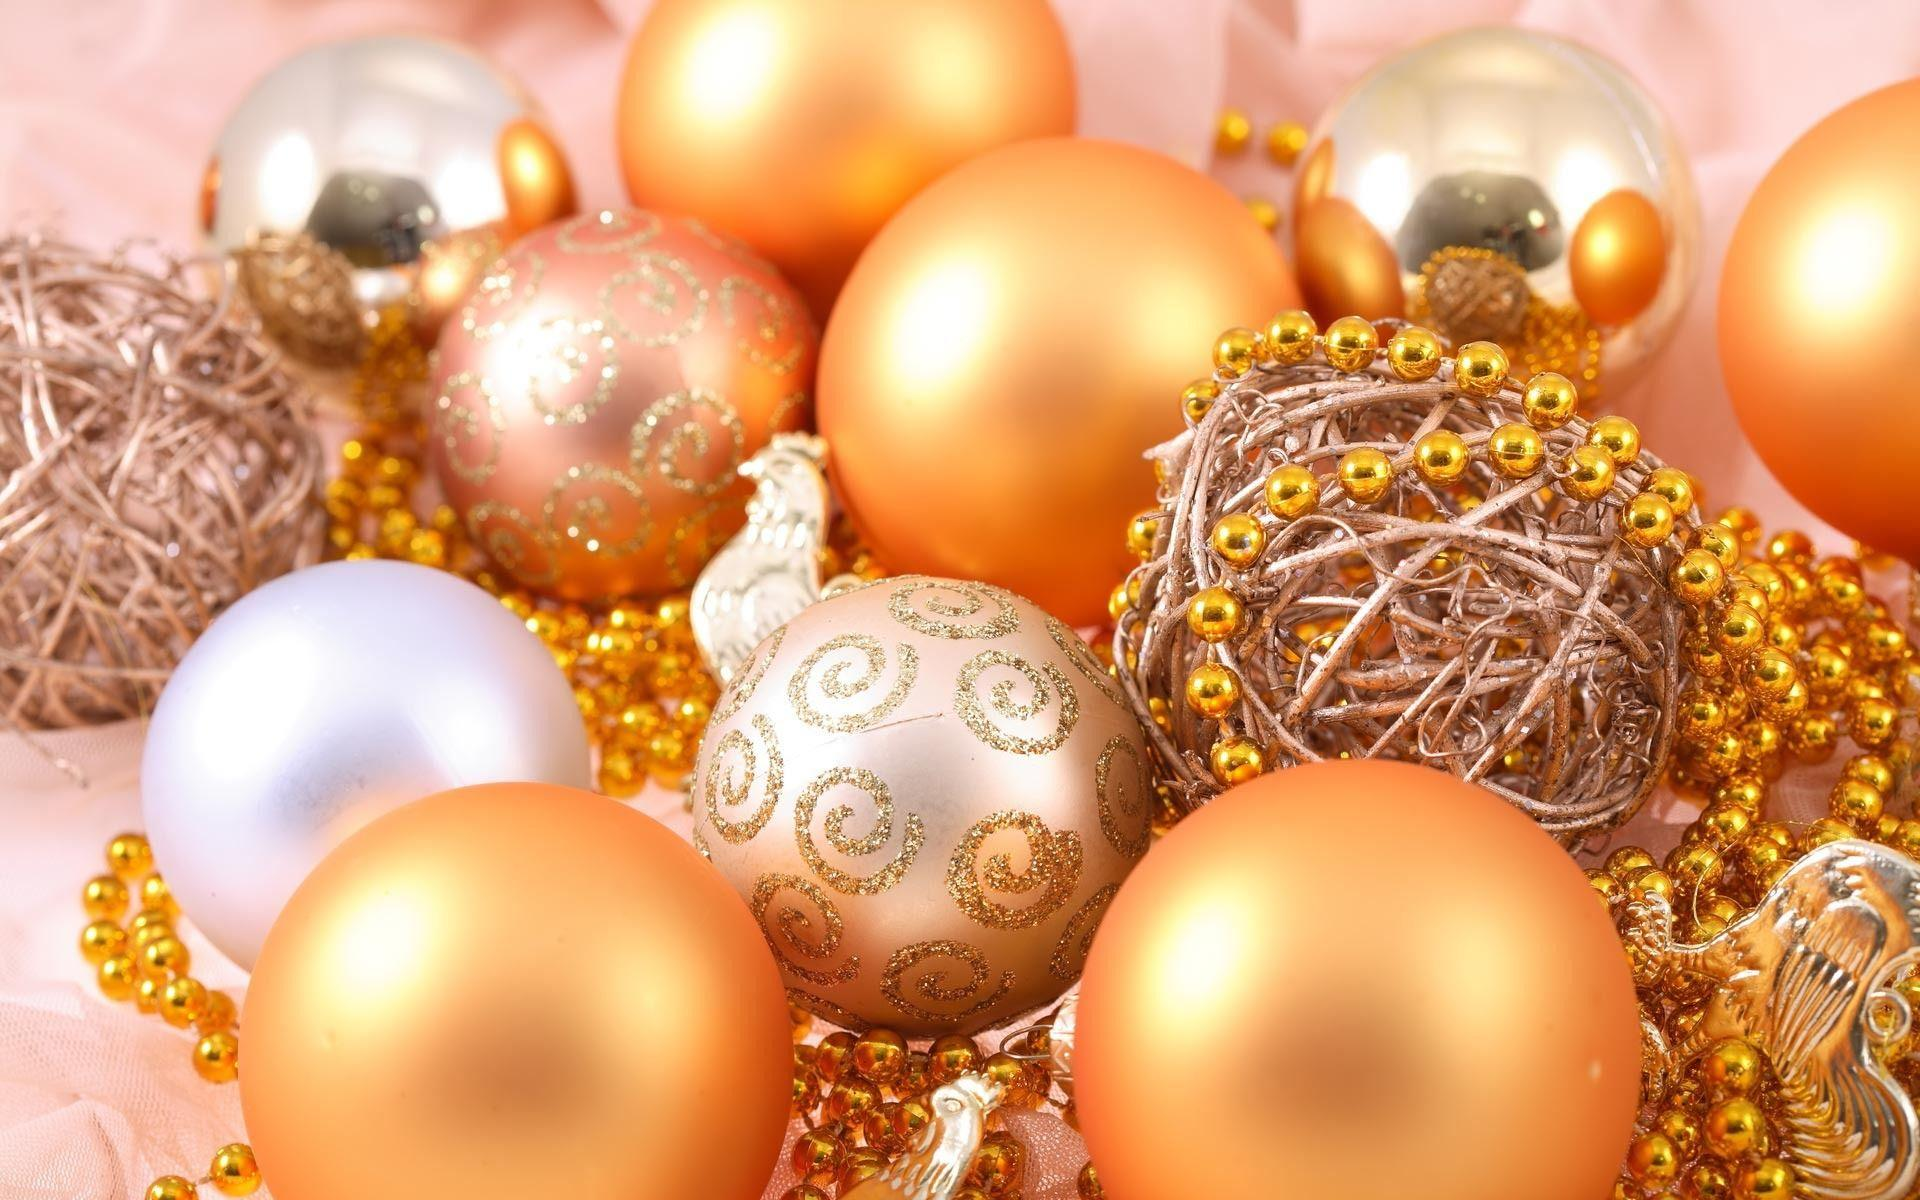 Fantastic Christmas Ornaments wallpapers